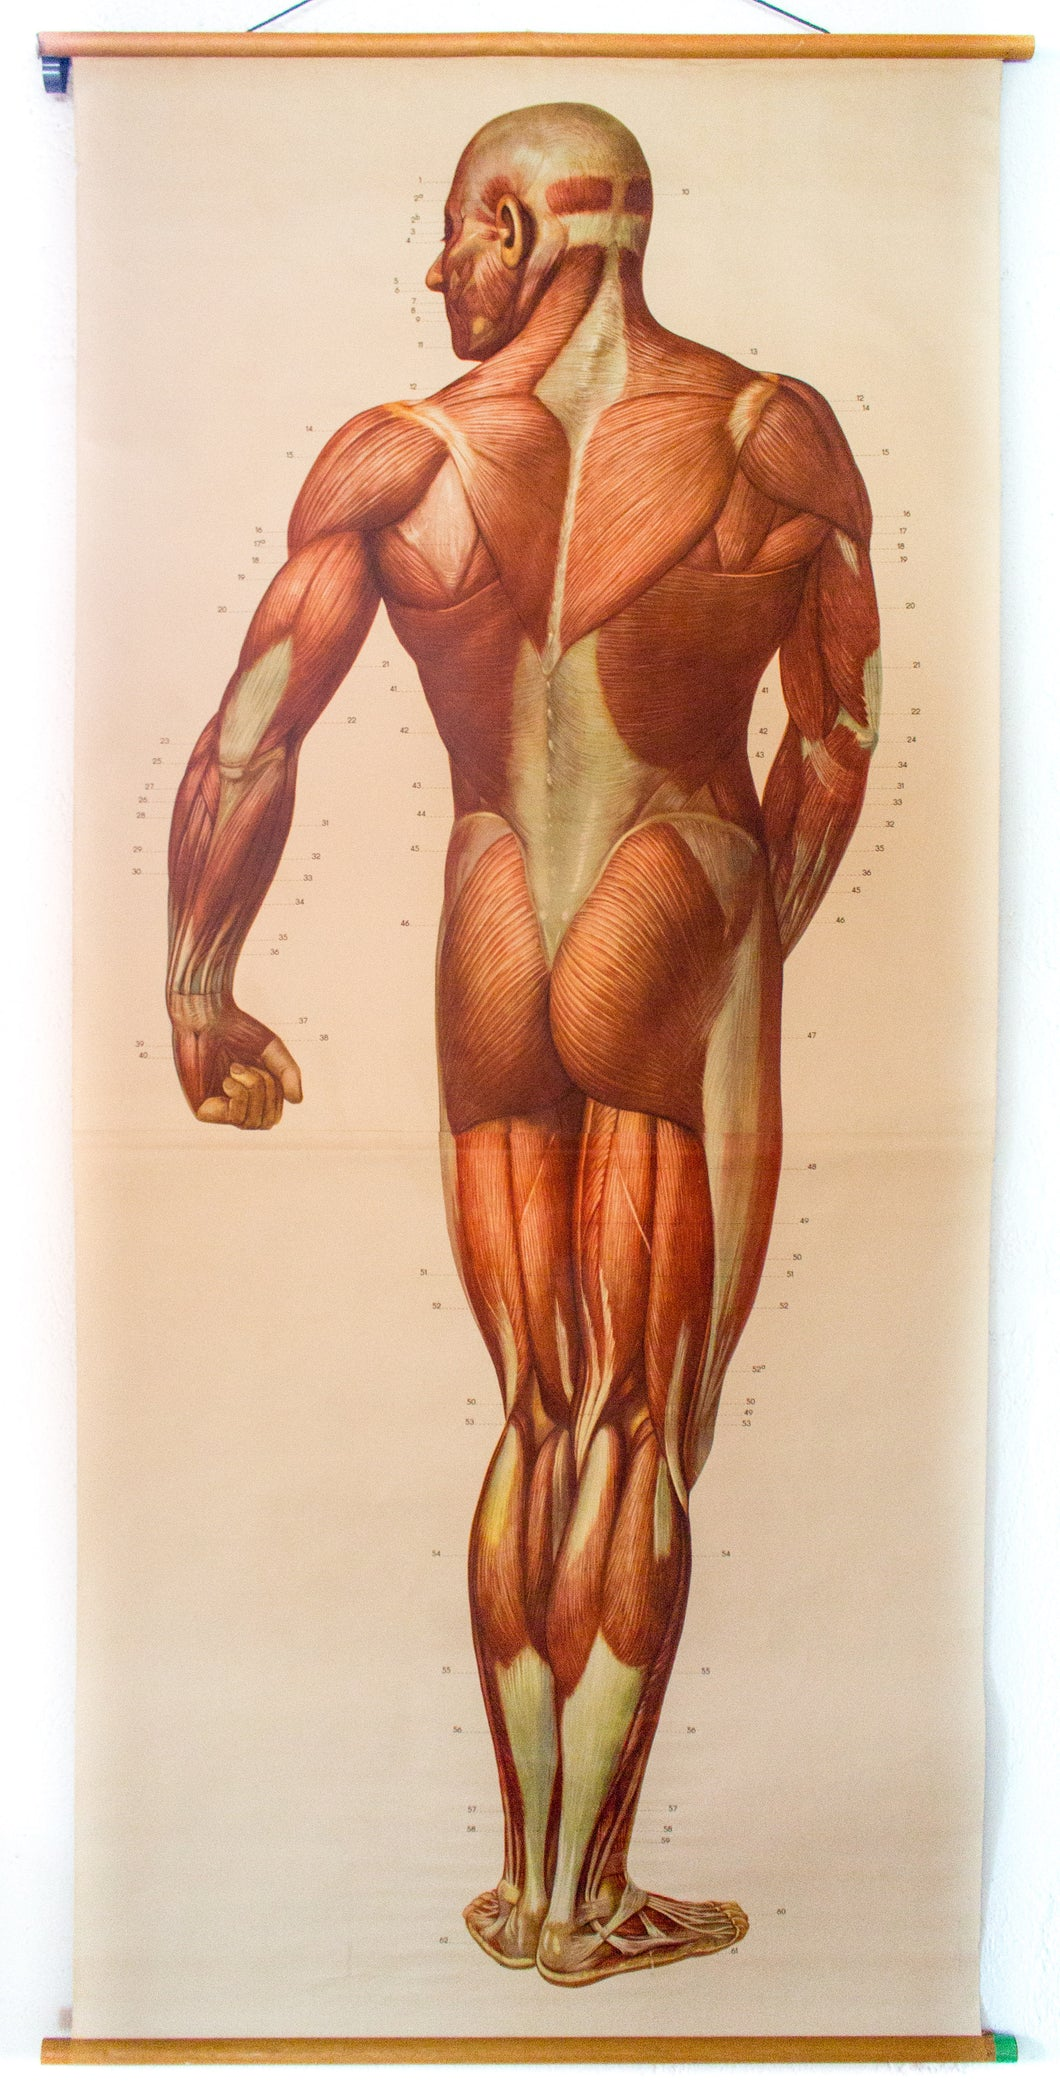 Muscles of the Human Body, Deutsches Hygiene Institute, 1948